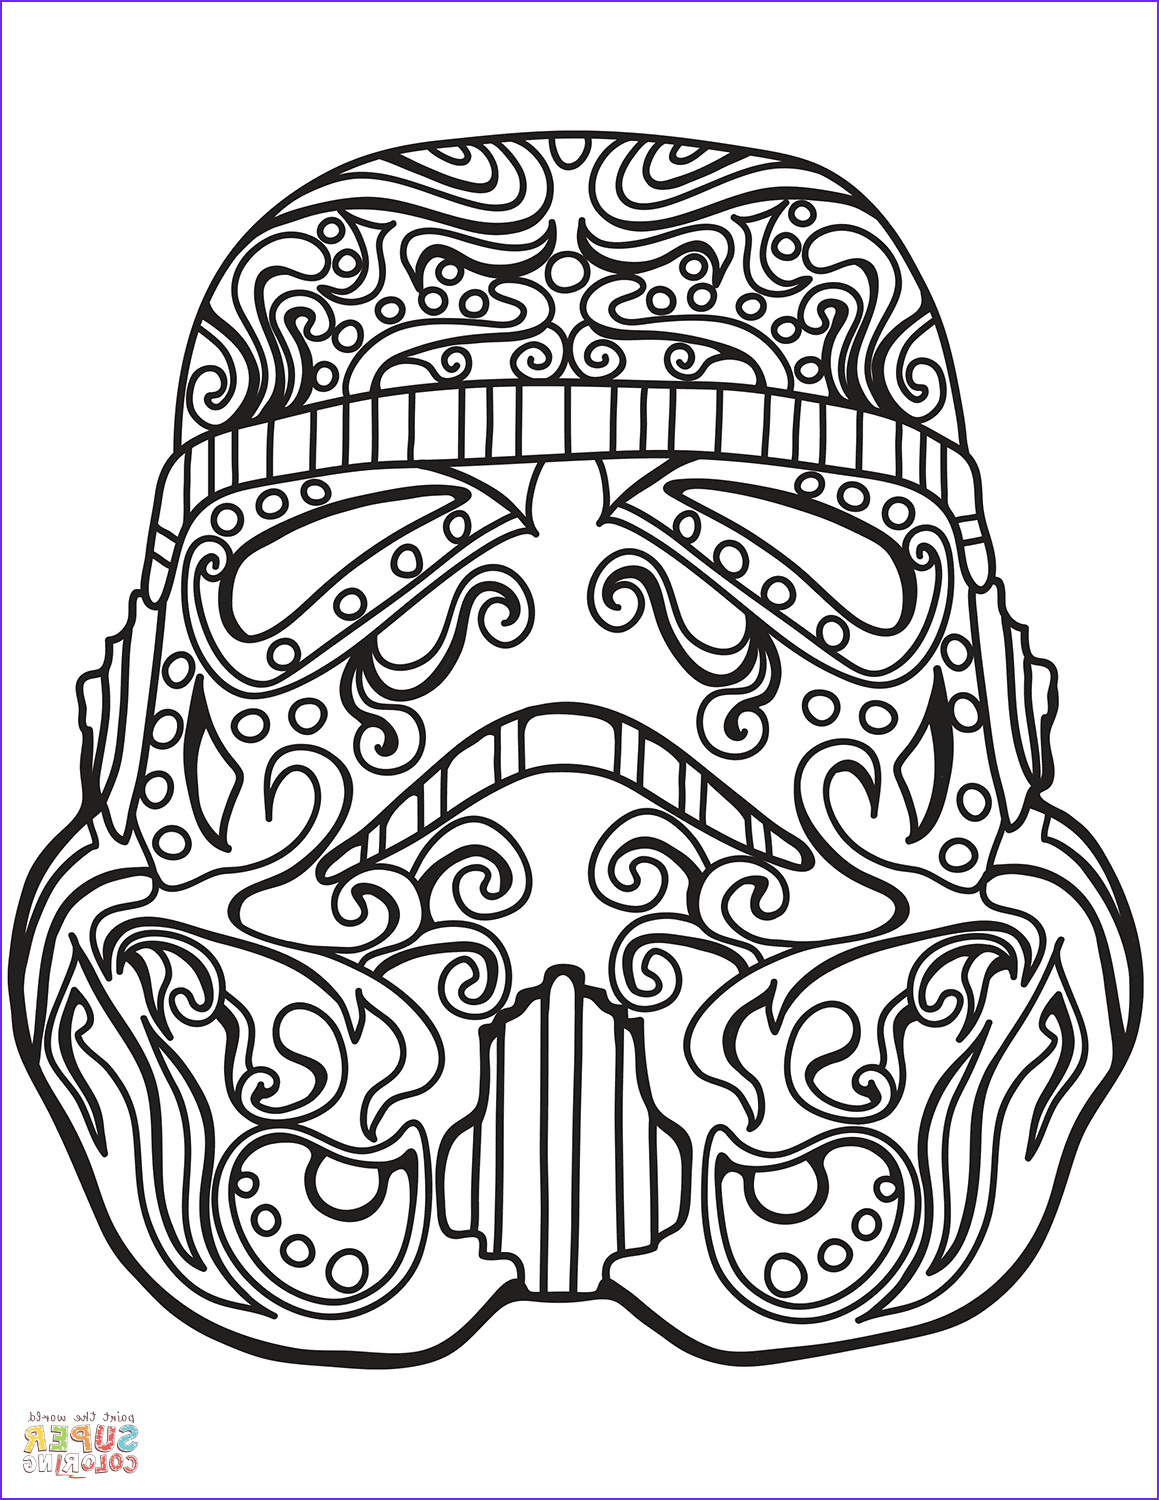 Star Wars Adult Coloring Pages Cool Images Star Wars Stormtrooper Sugar Skull Coloring Page